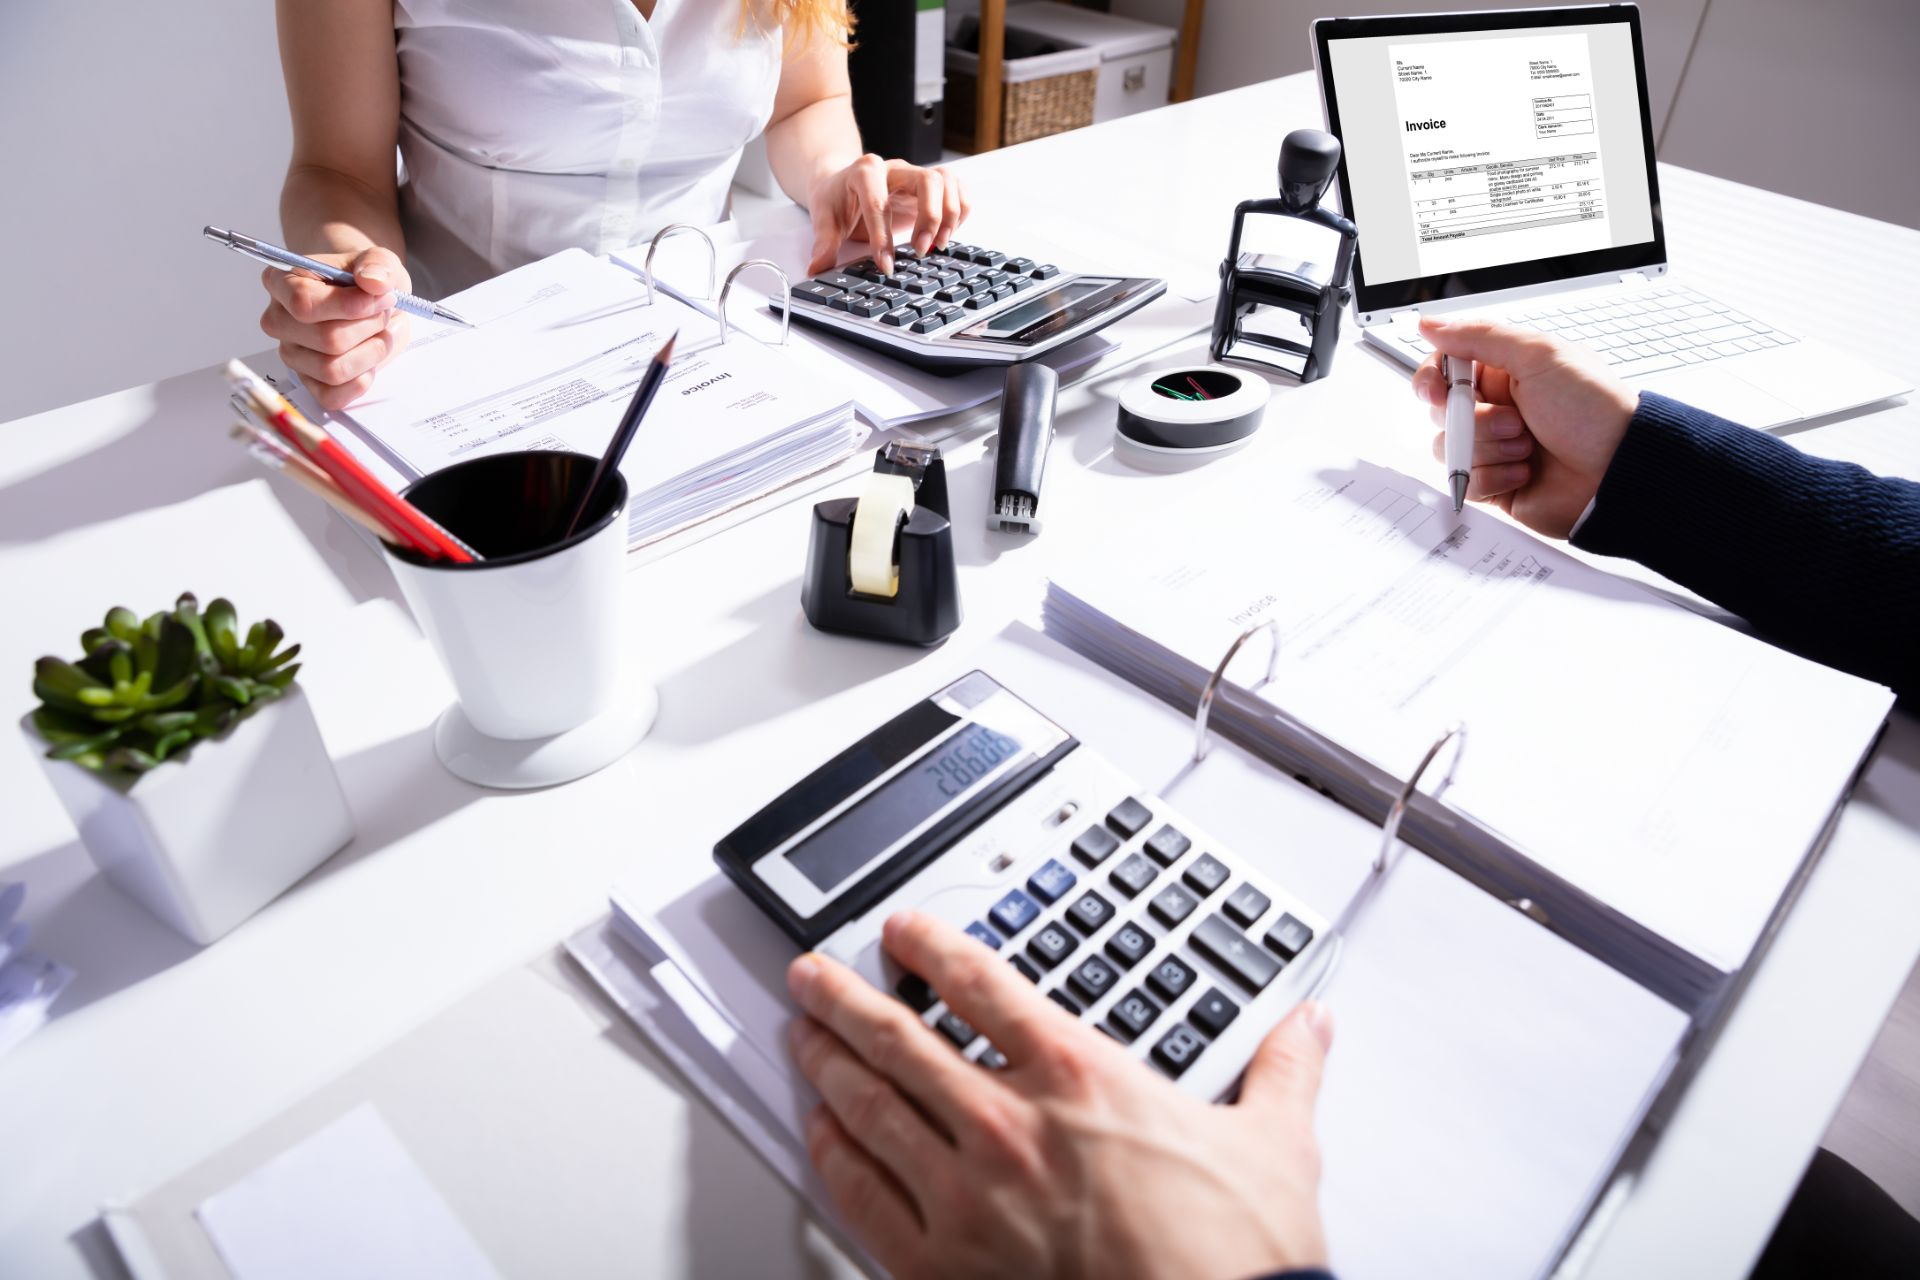 ASSESS THE CONDITION OF YOURPERSONAL OR BUSINESS FINANCES.